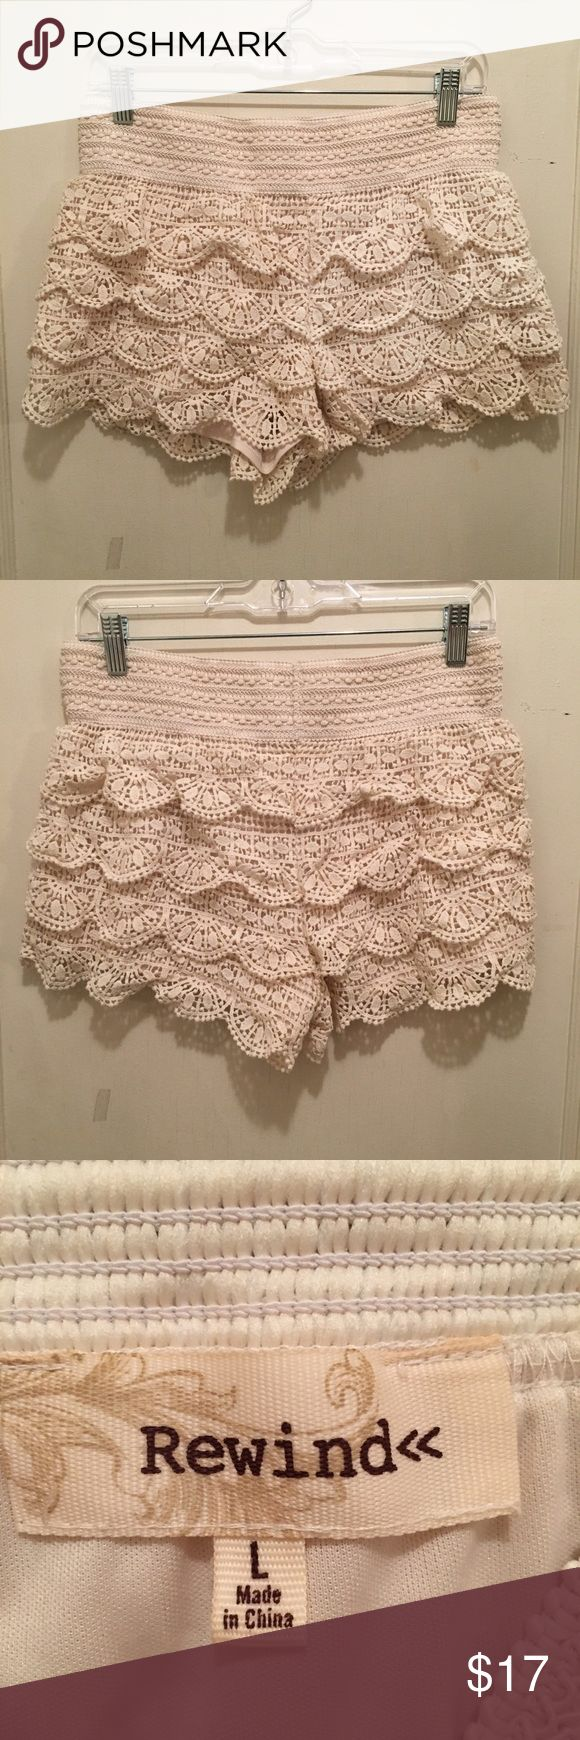 "REWIND Scalloped Cream Shorts These REWIND scalloped cream shorts are perfect for the summer! These have four layers of crocheted scallops and a think crocheted waist band.  Length is 12"" and inseam is 3"". Rewind Shorts"